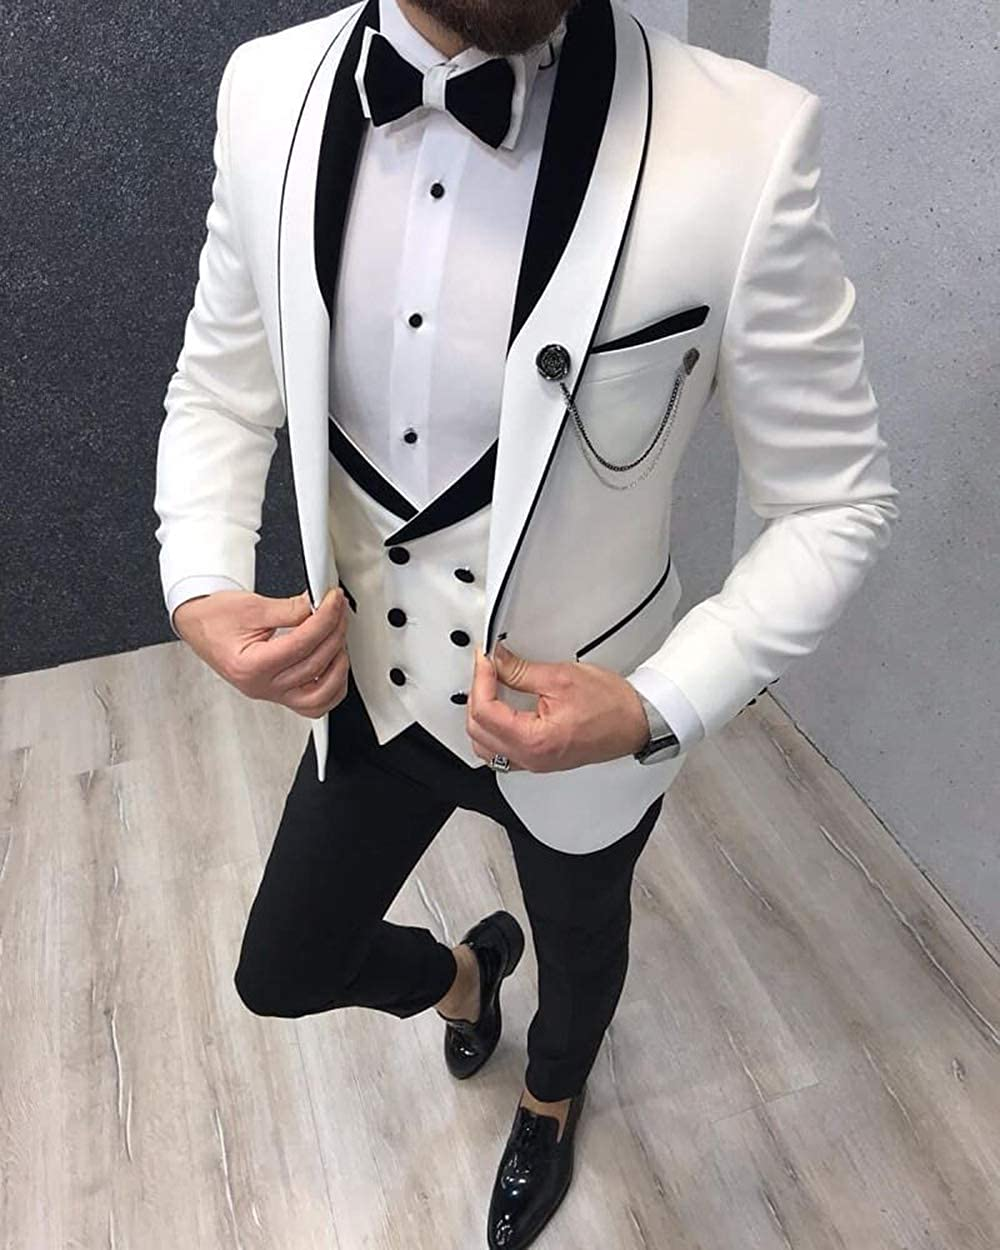 Aesido Men's Casual Suits Slim Fit 3 Piece Prom Tuxedos Shawl Lapel Double Breasted Vest Blazer Pants Grooms Wedding Party Light Blue